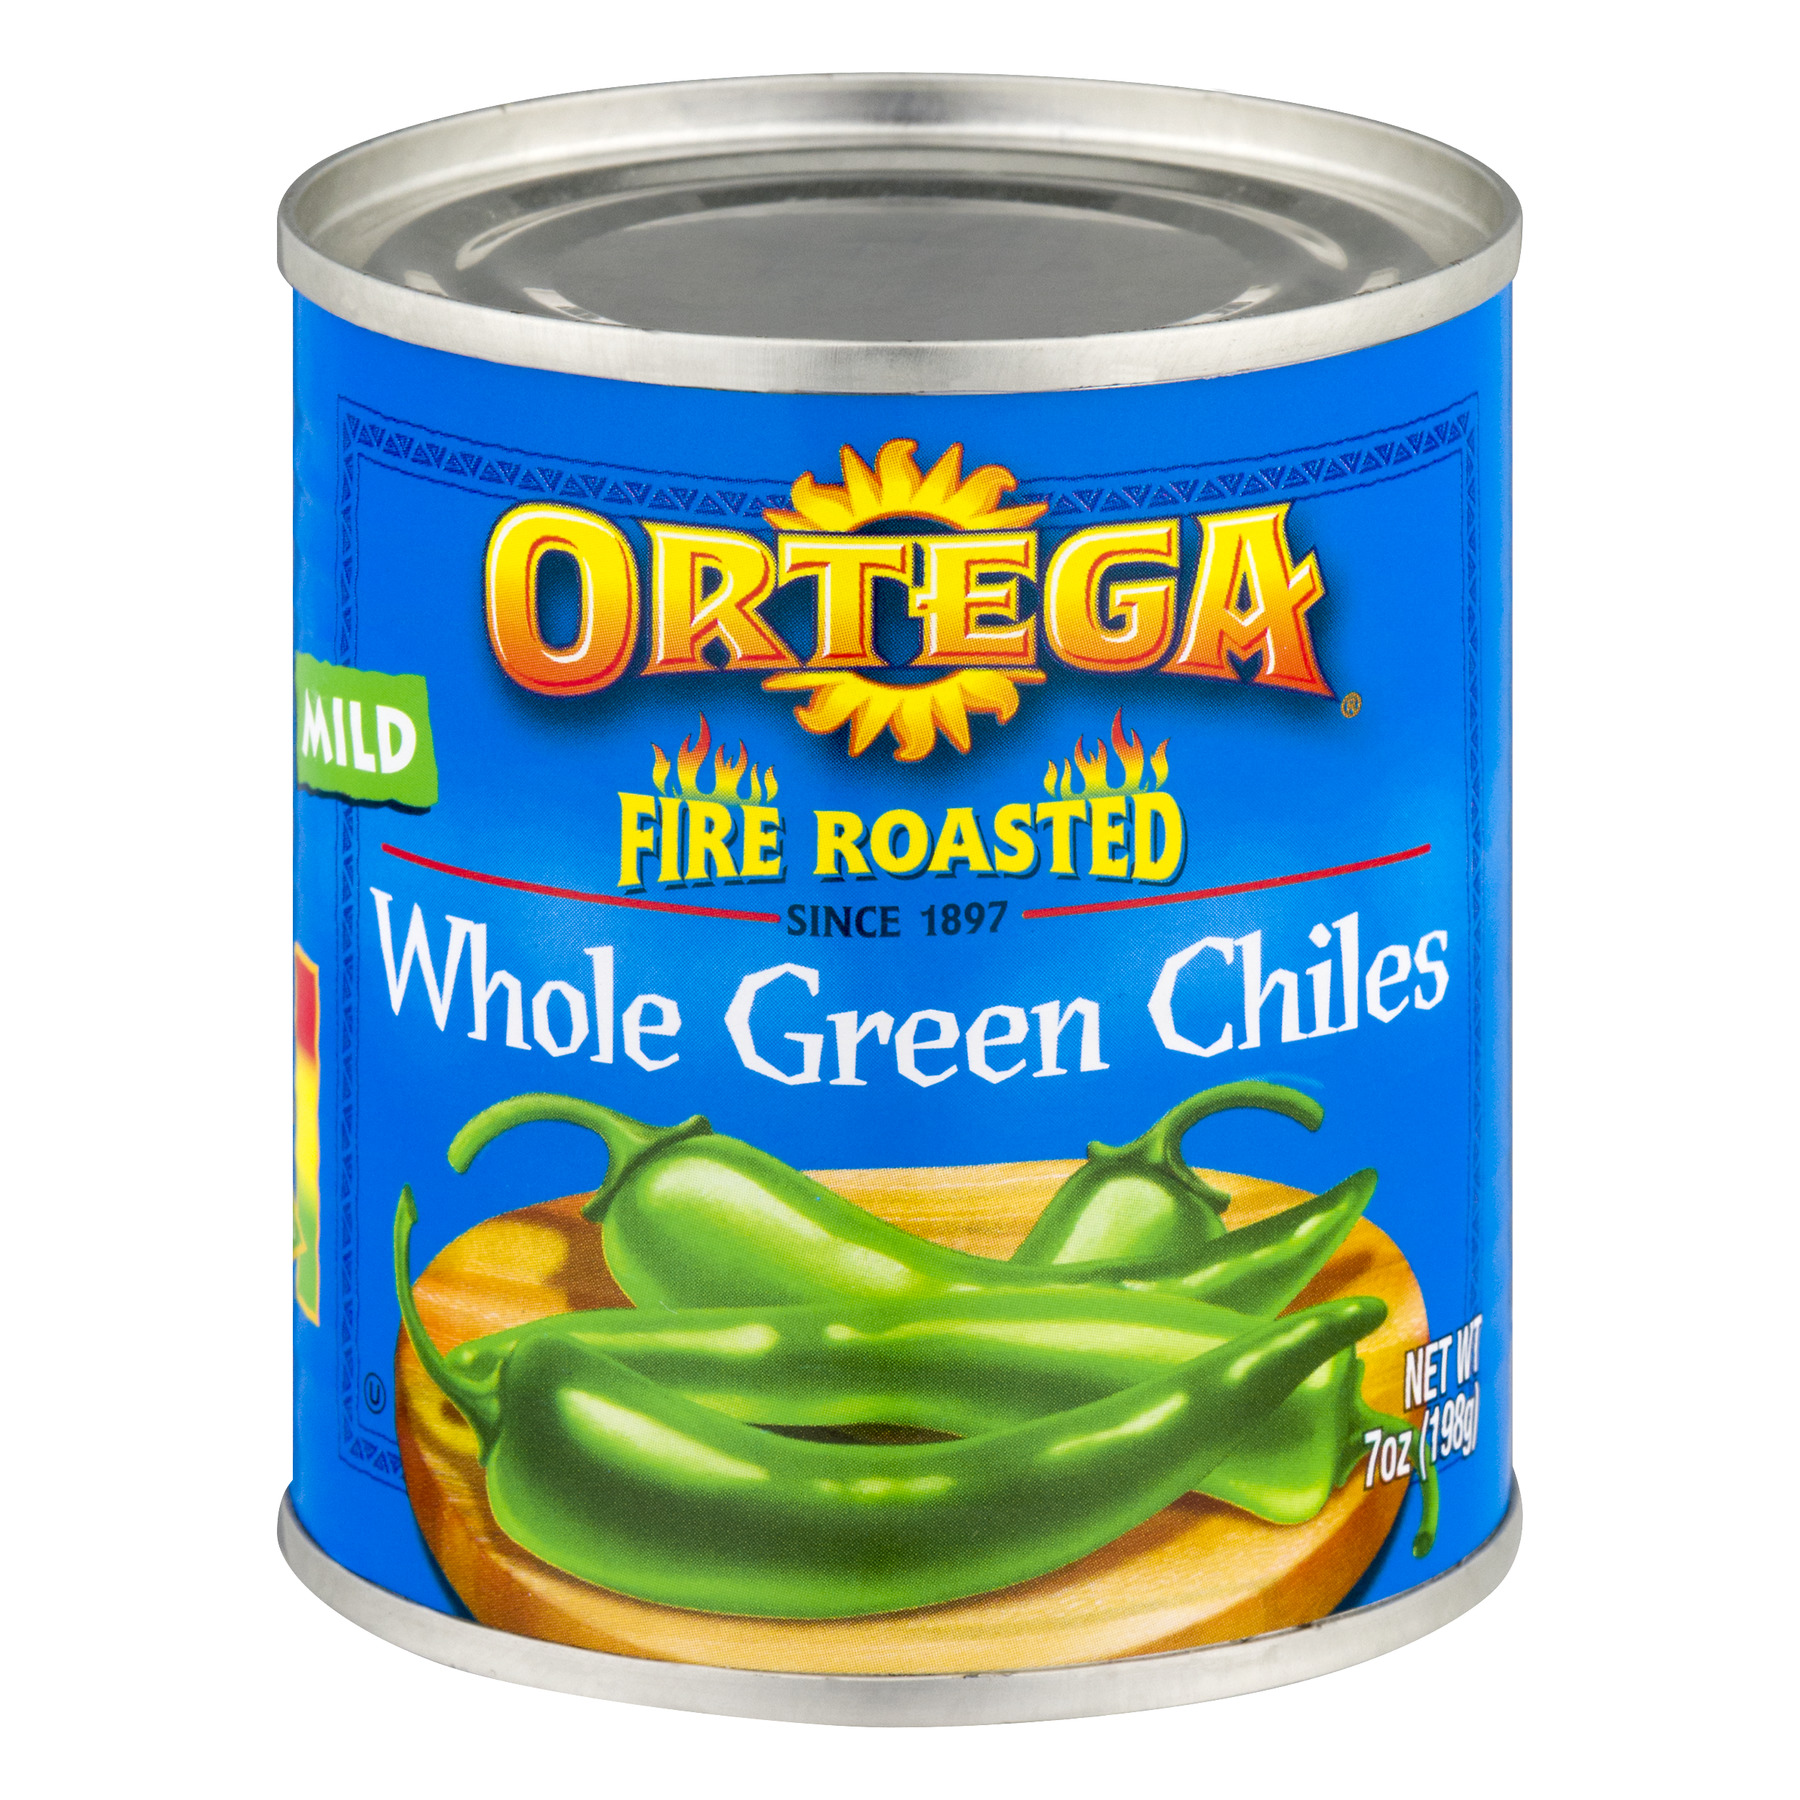 Ortega Fire Roasted Whole Mild Green Chiles, 7 Oz